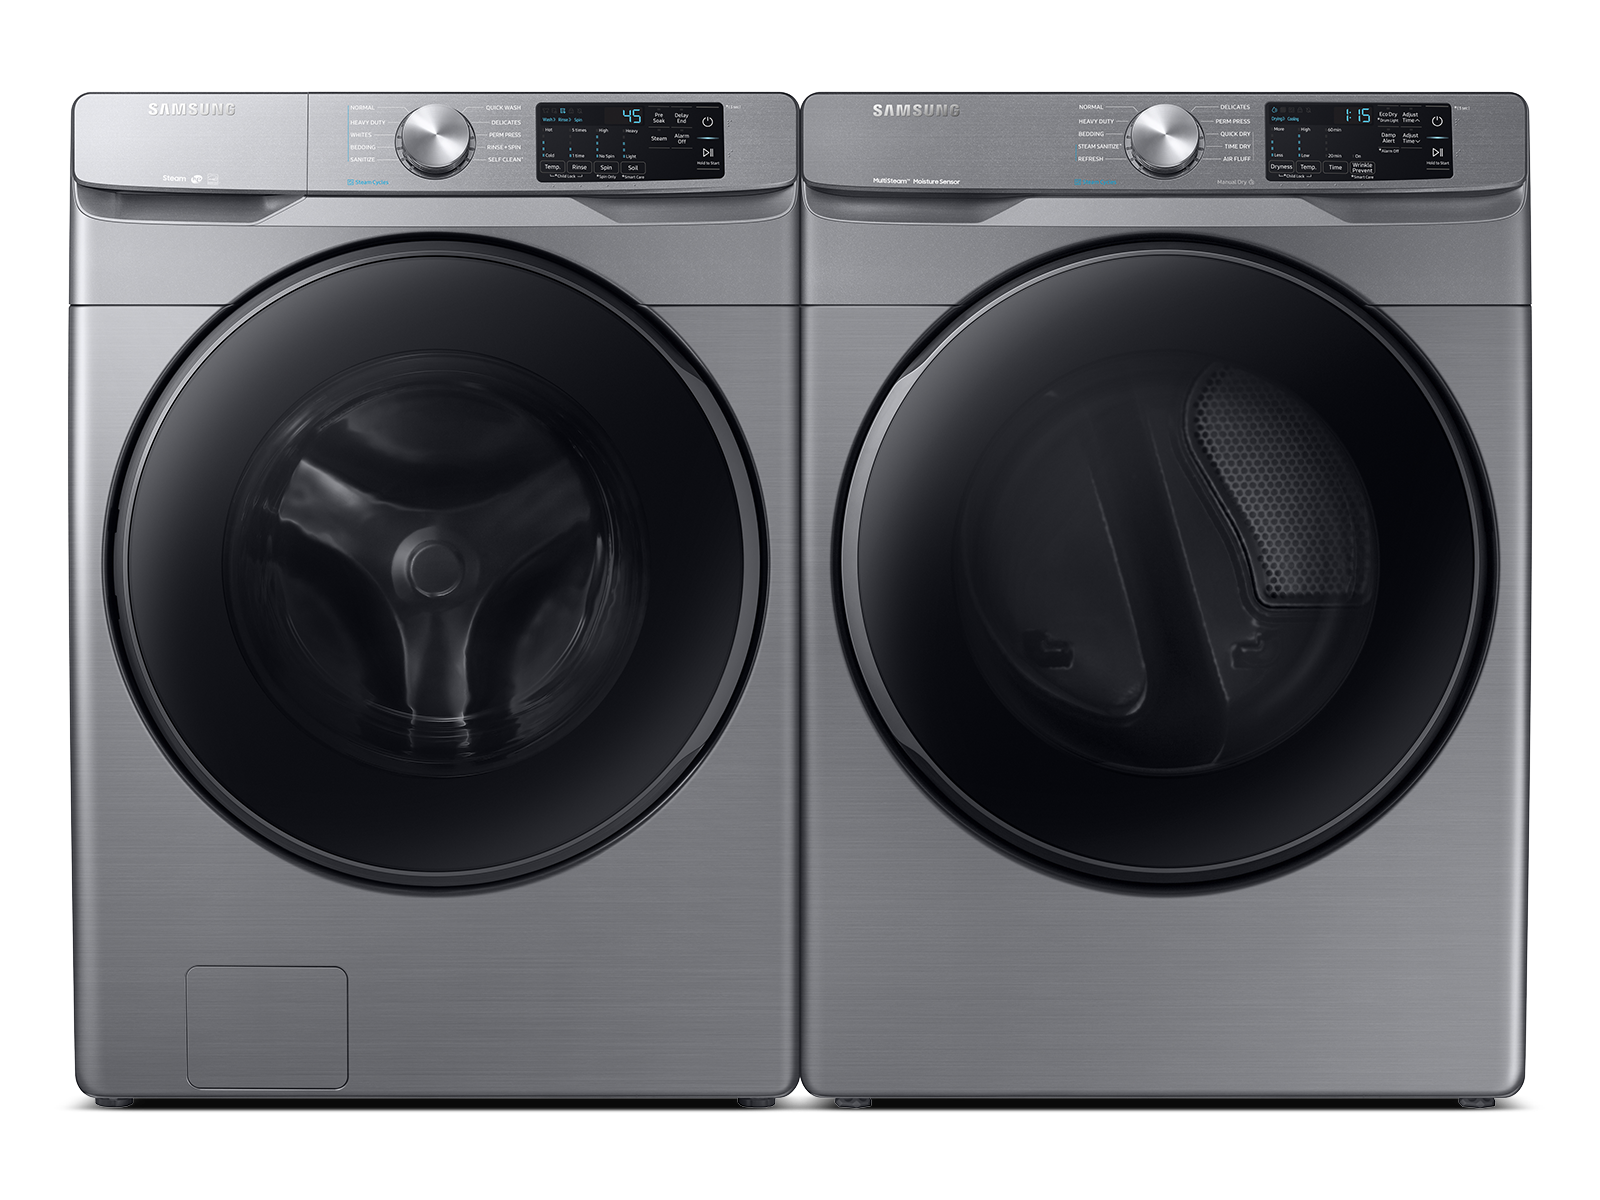 Samsung coupon: Samsung Front Load Washer & Dryer Set with Steam and Steam Sanitize+ in Platinum(BNDL-1603921589629)